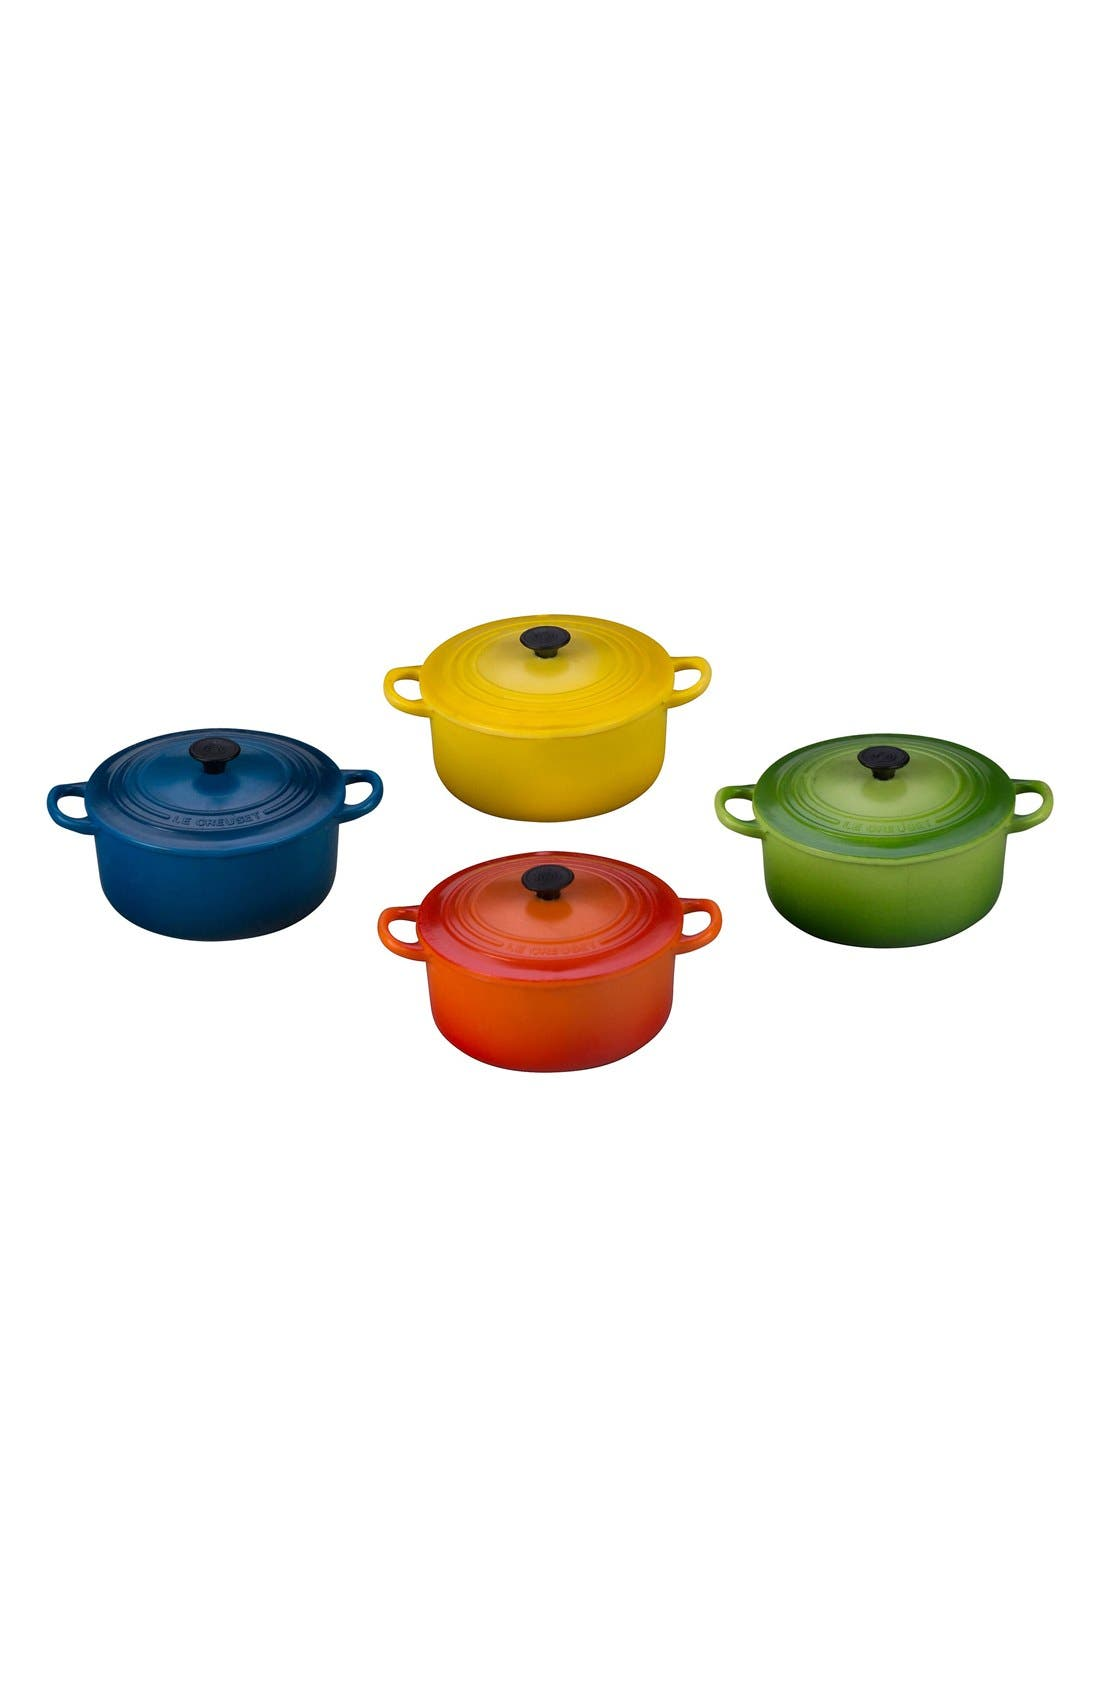 Le Creuset 'Dutch Oven' Magnets (Set of 4)